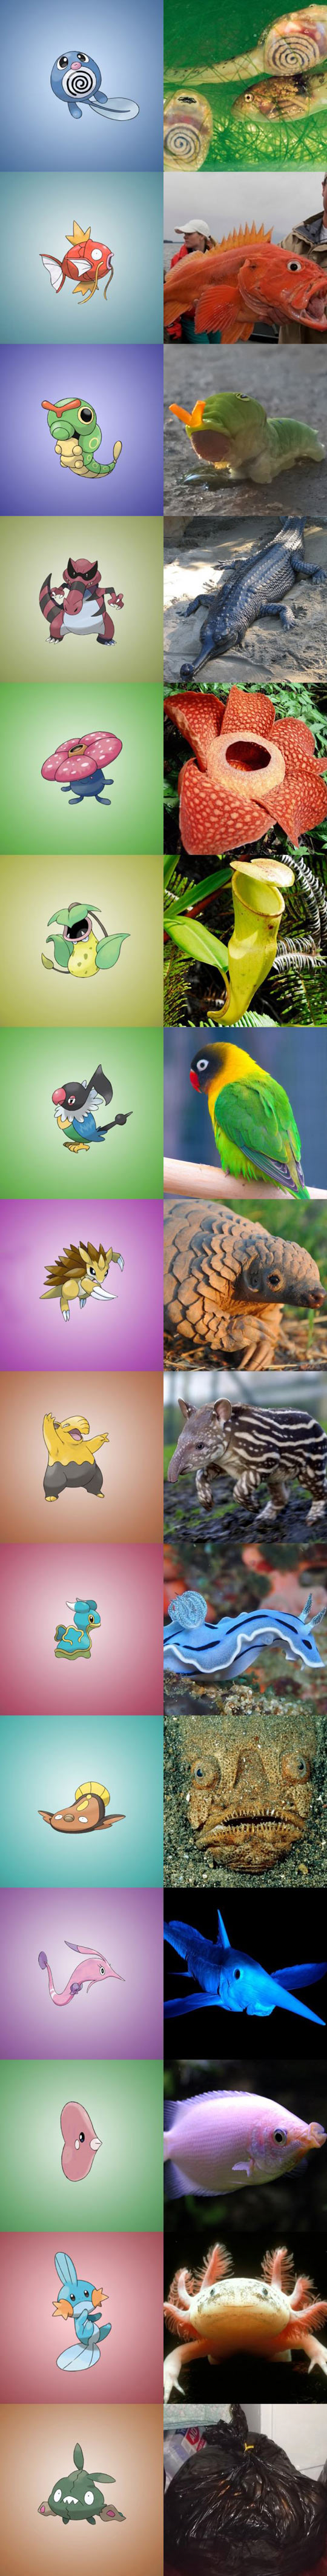 Real Things That Inspired Pokemons